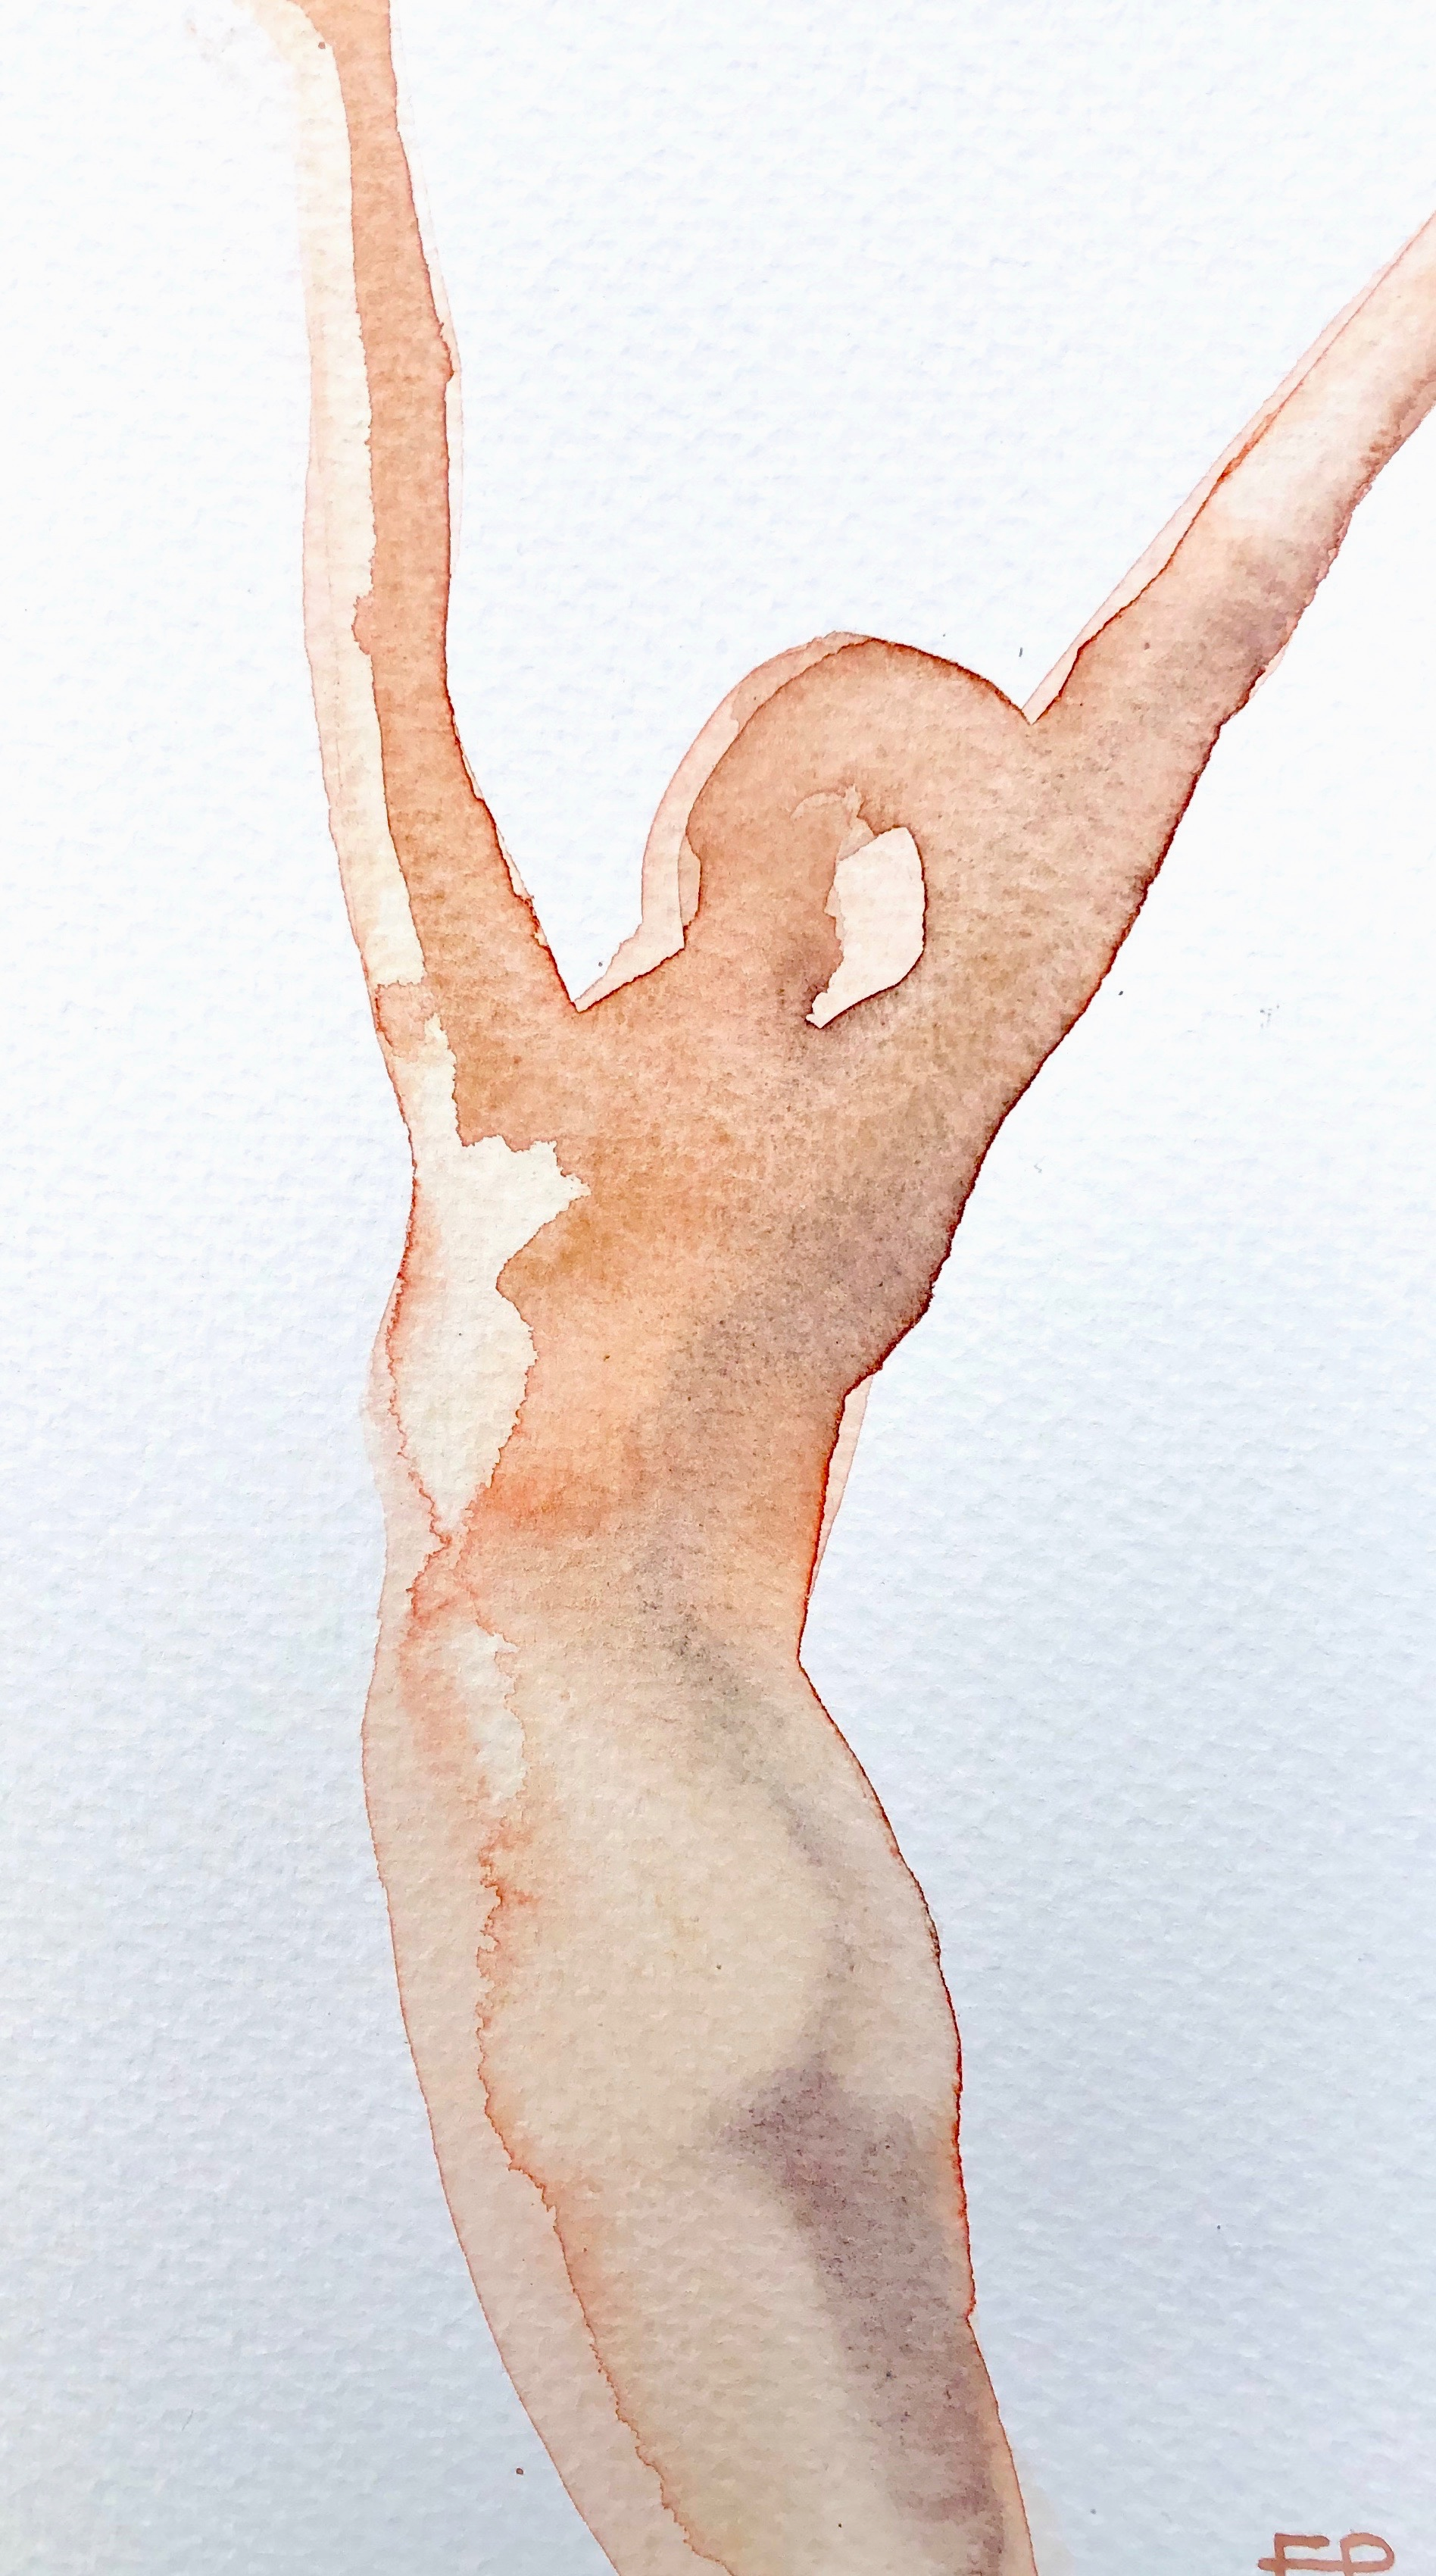 Joy 10  Watercolour on paper  21 x 12cm  SOLD   emponsonby@gmail.com